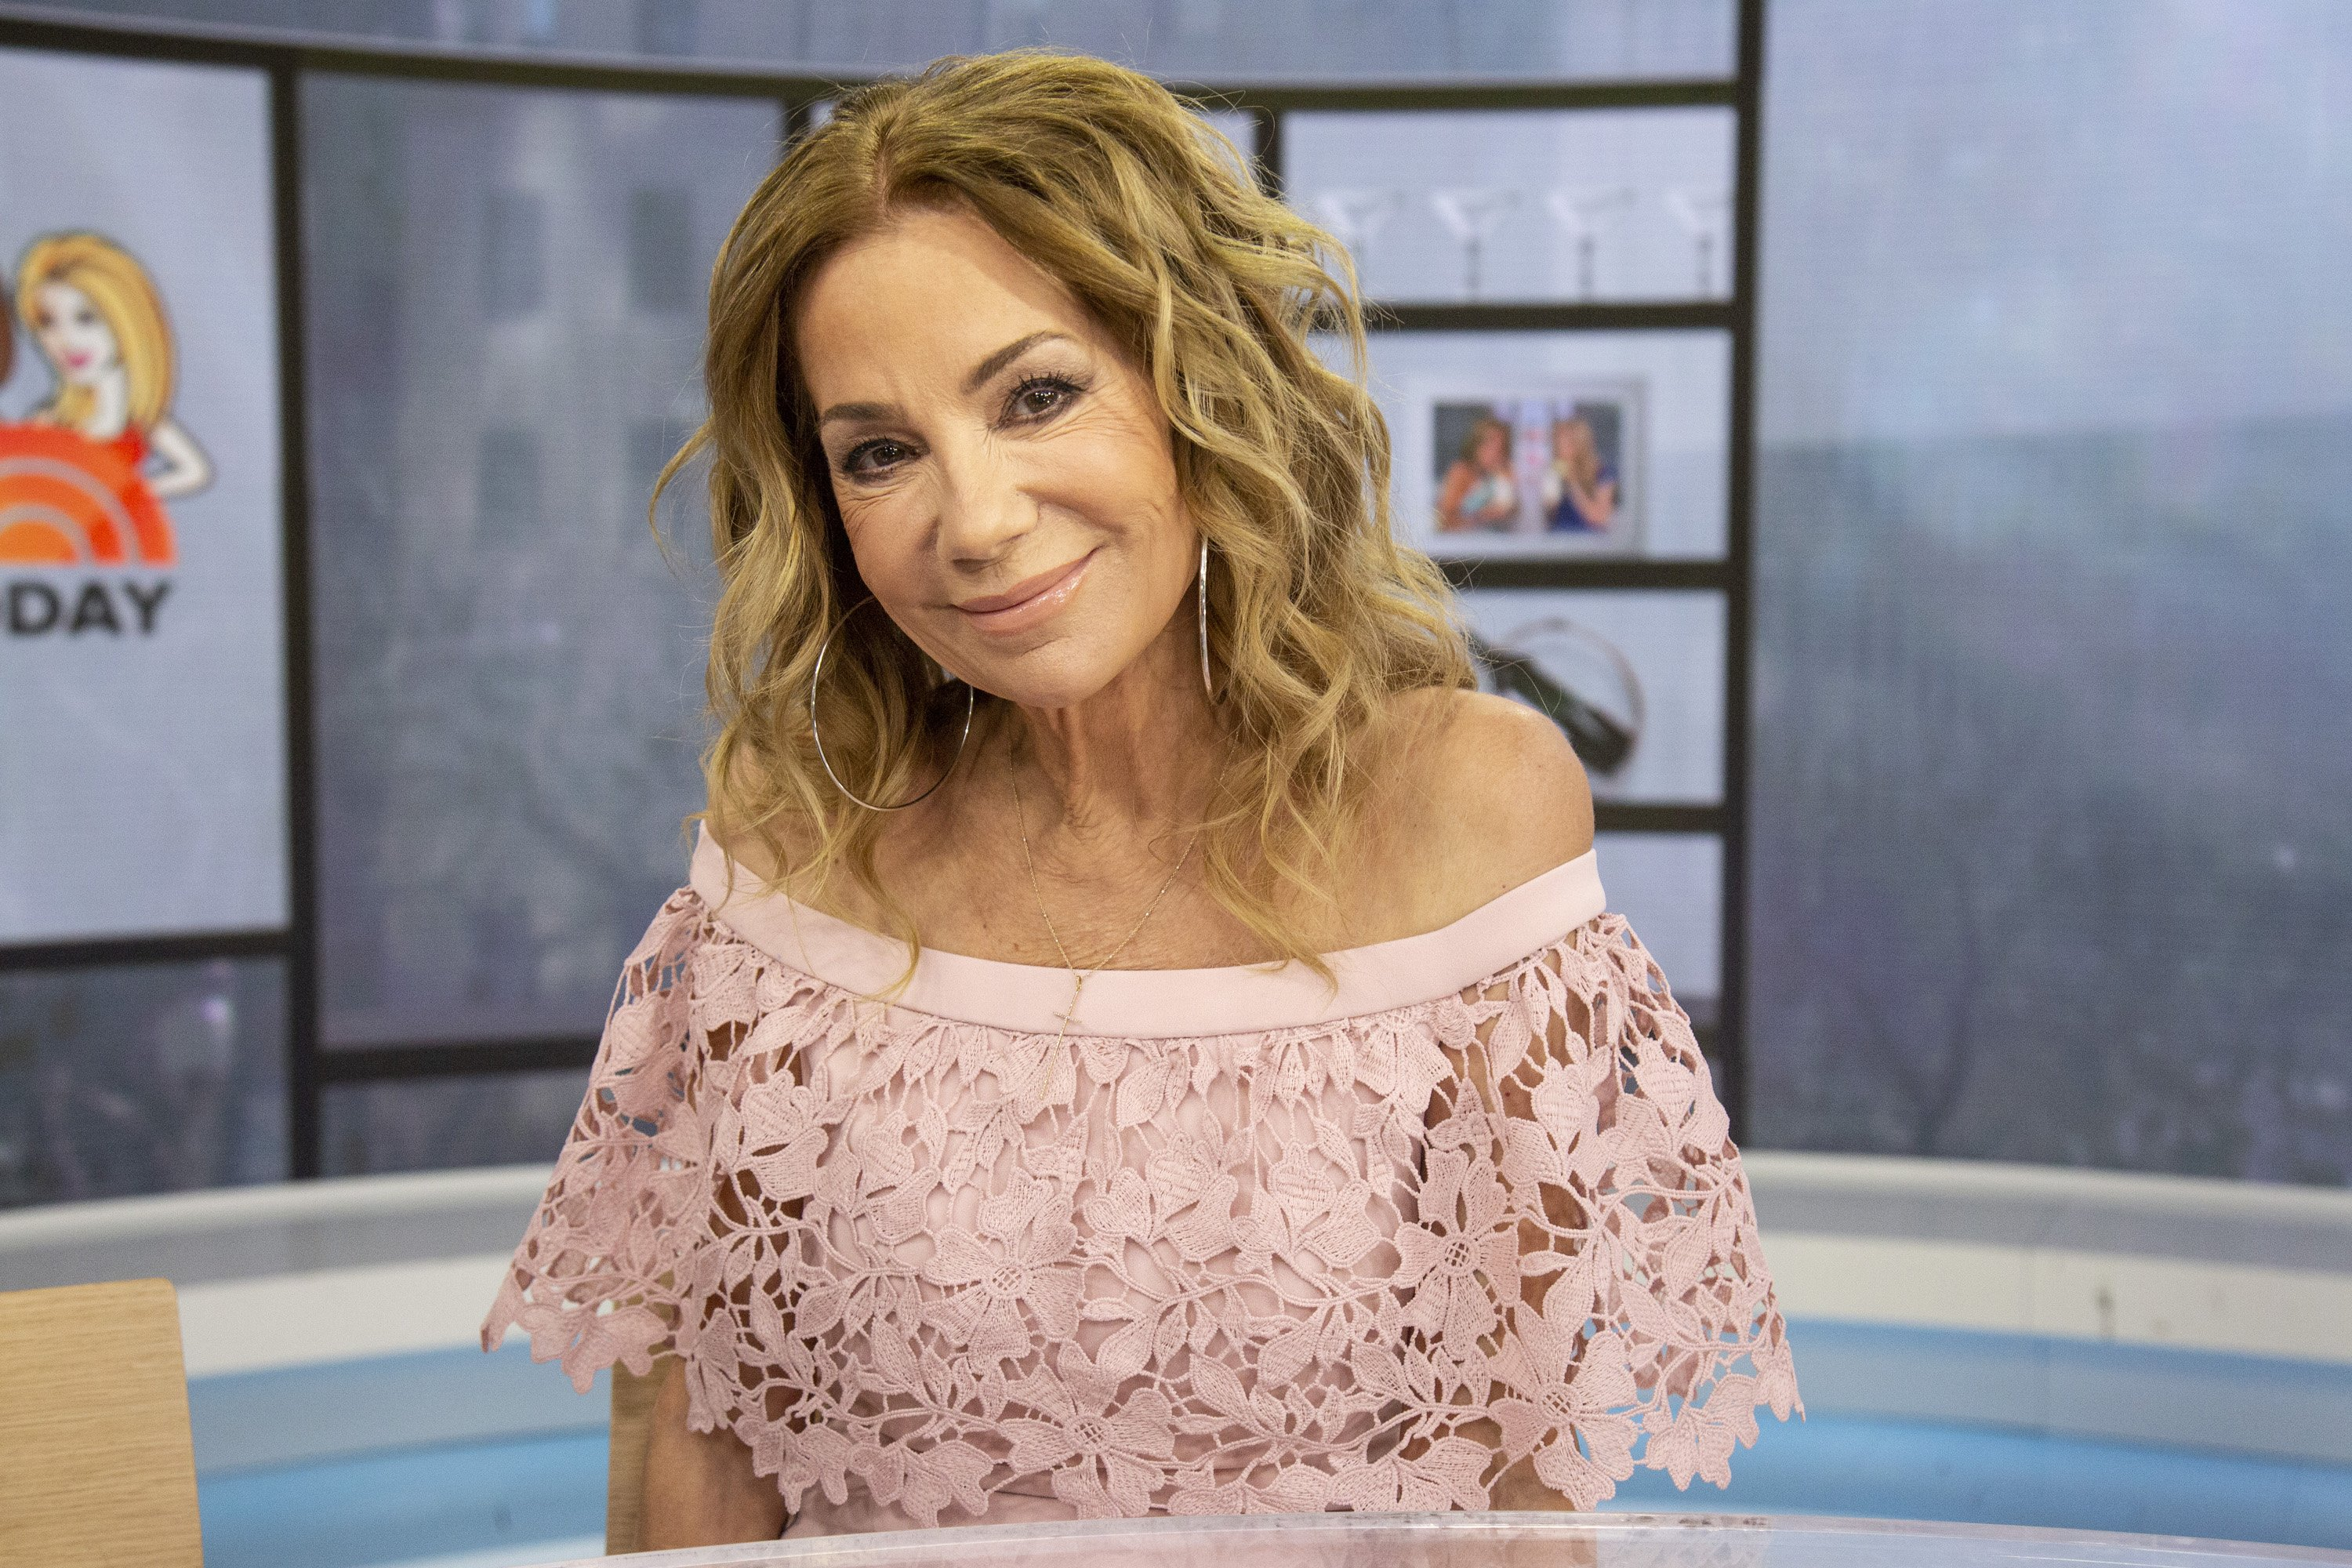 Kathie Lee Gifford on the TODAY show in April 2, 2019 | Photo: Getty Images